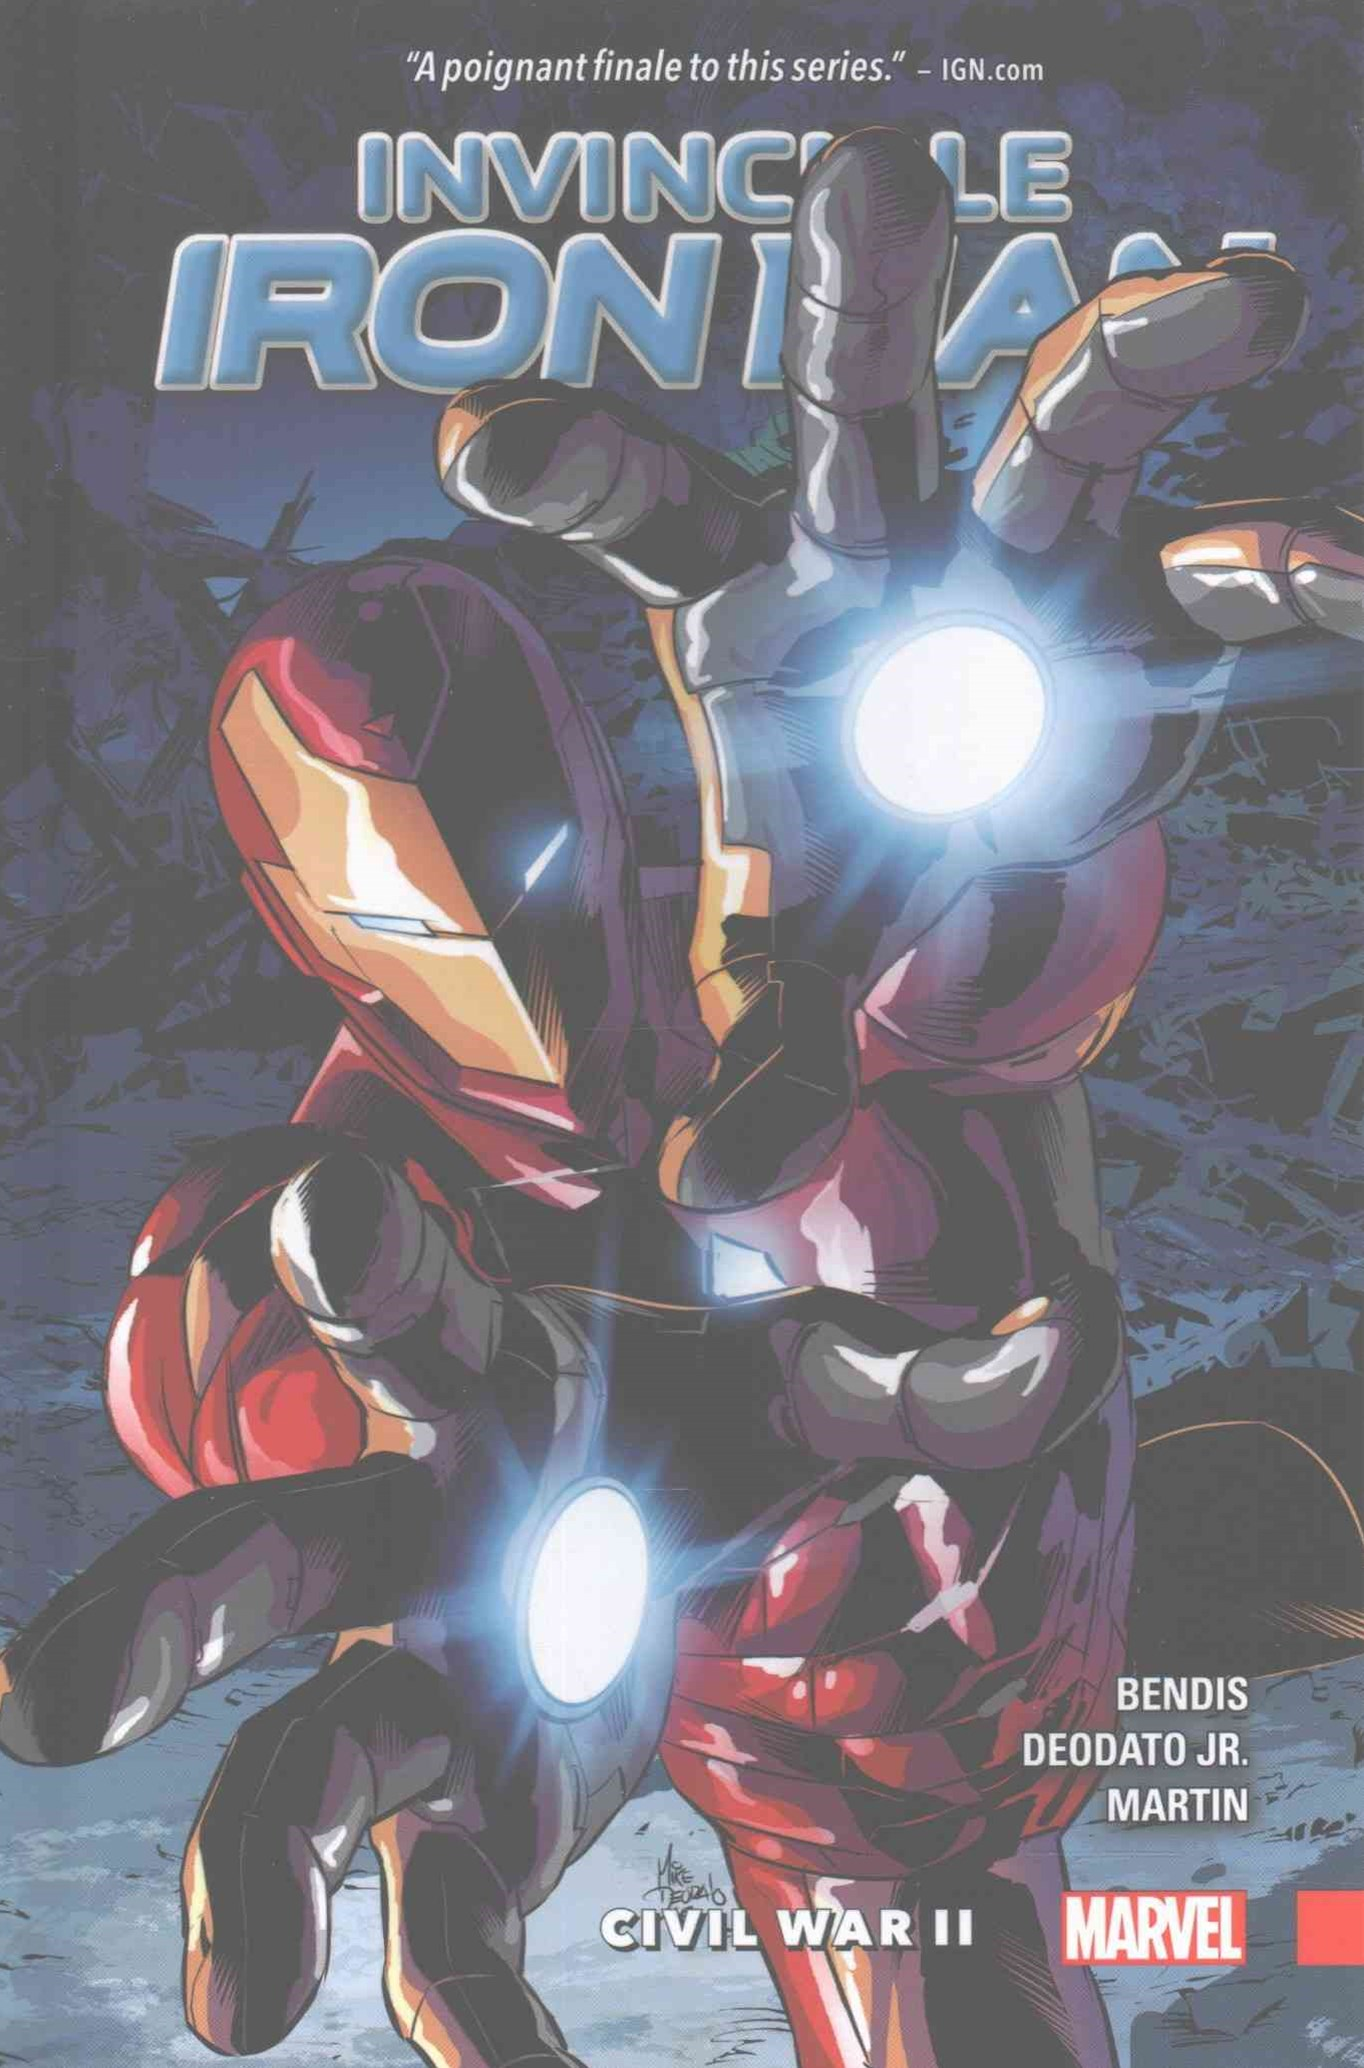 Invincible Iron Man Vol. 3